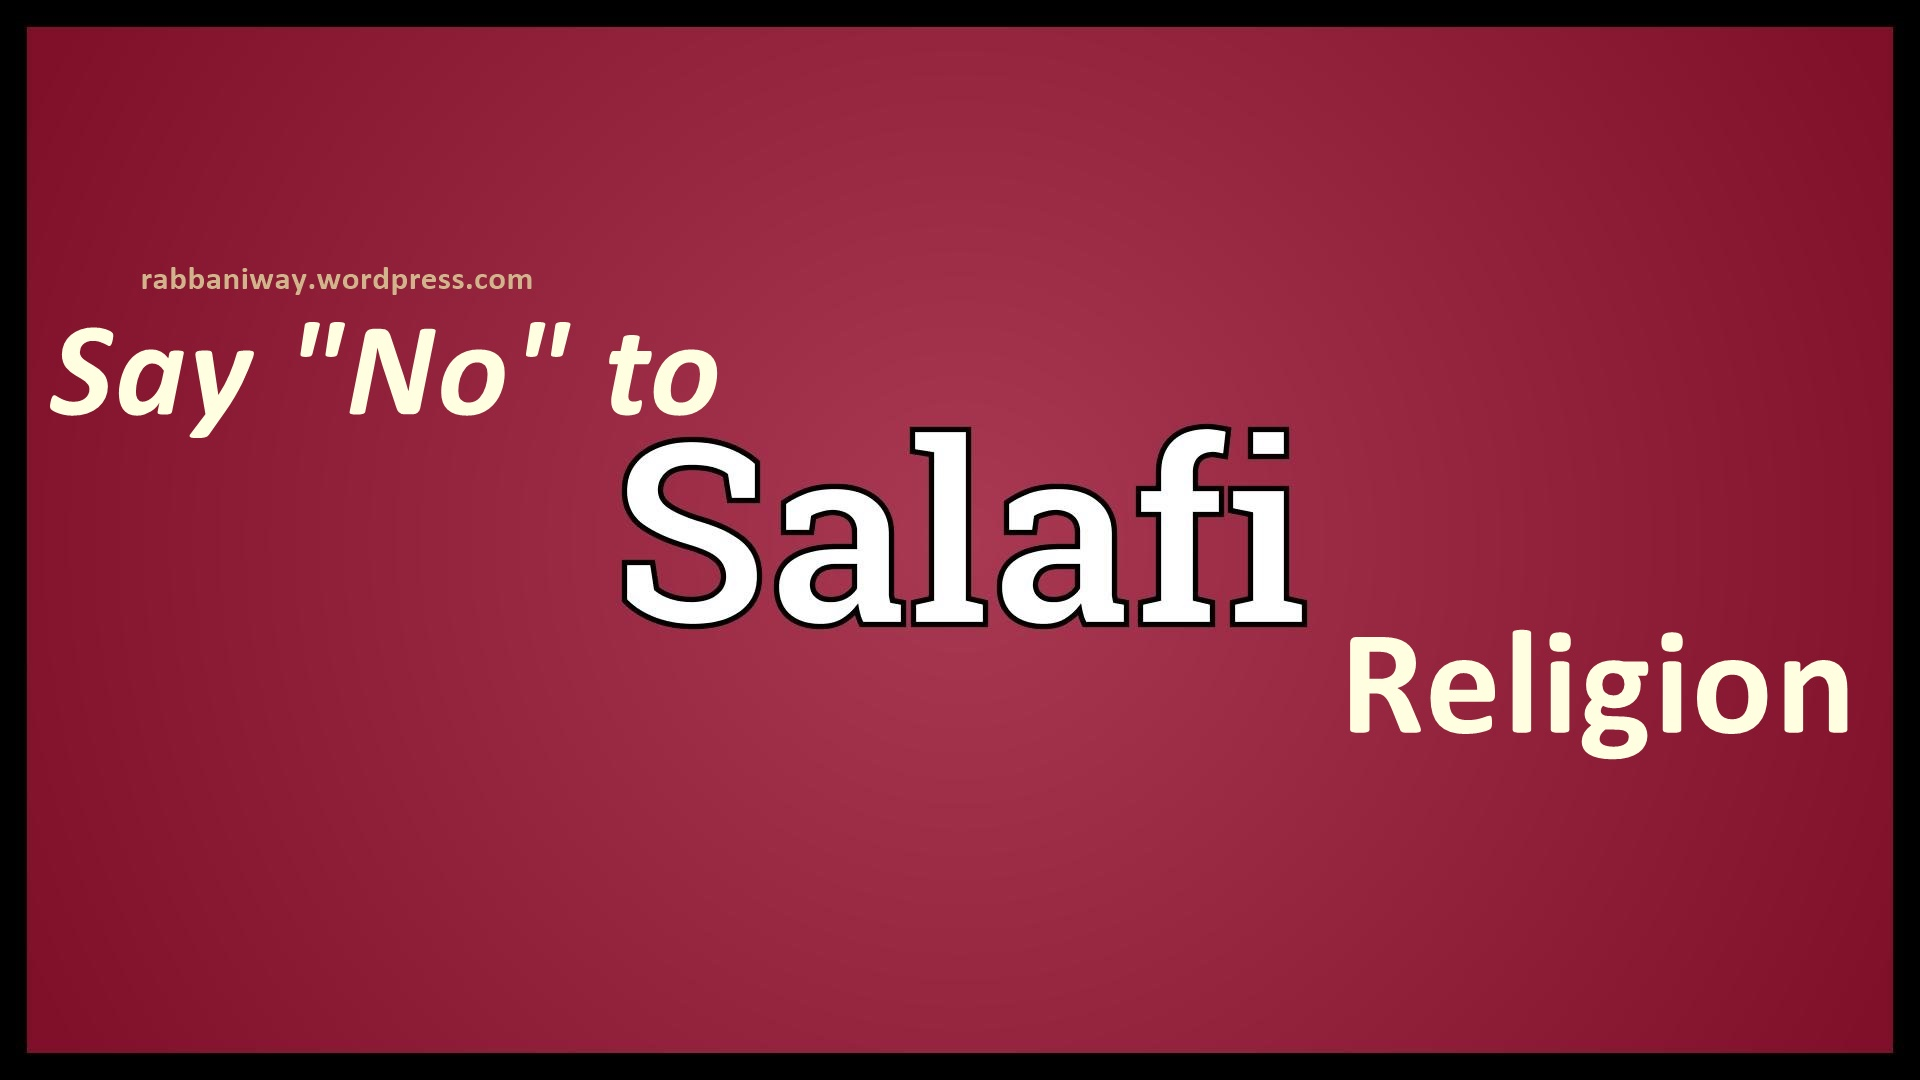 Hadiths that expose Salafis